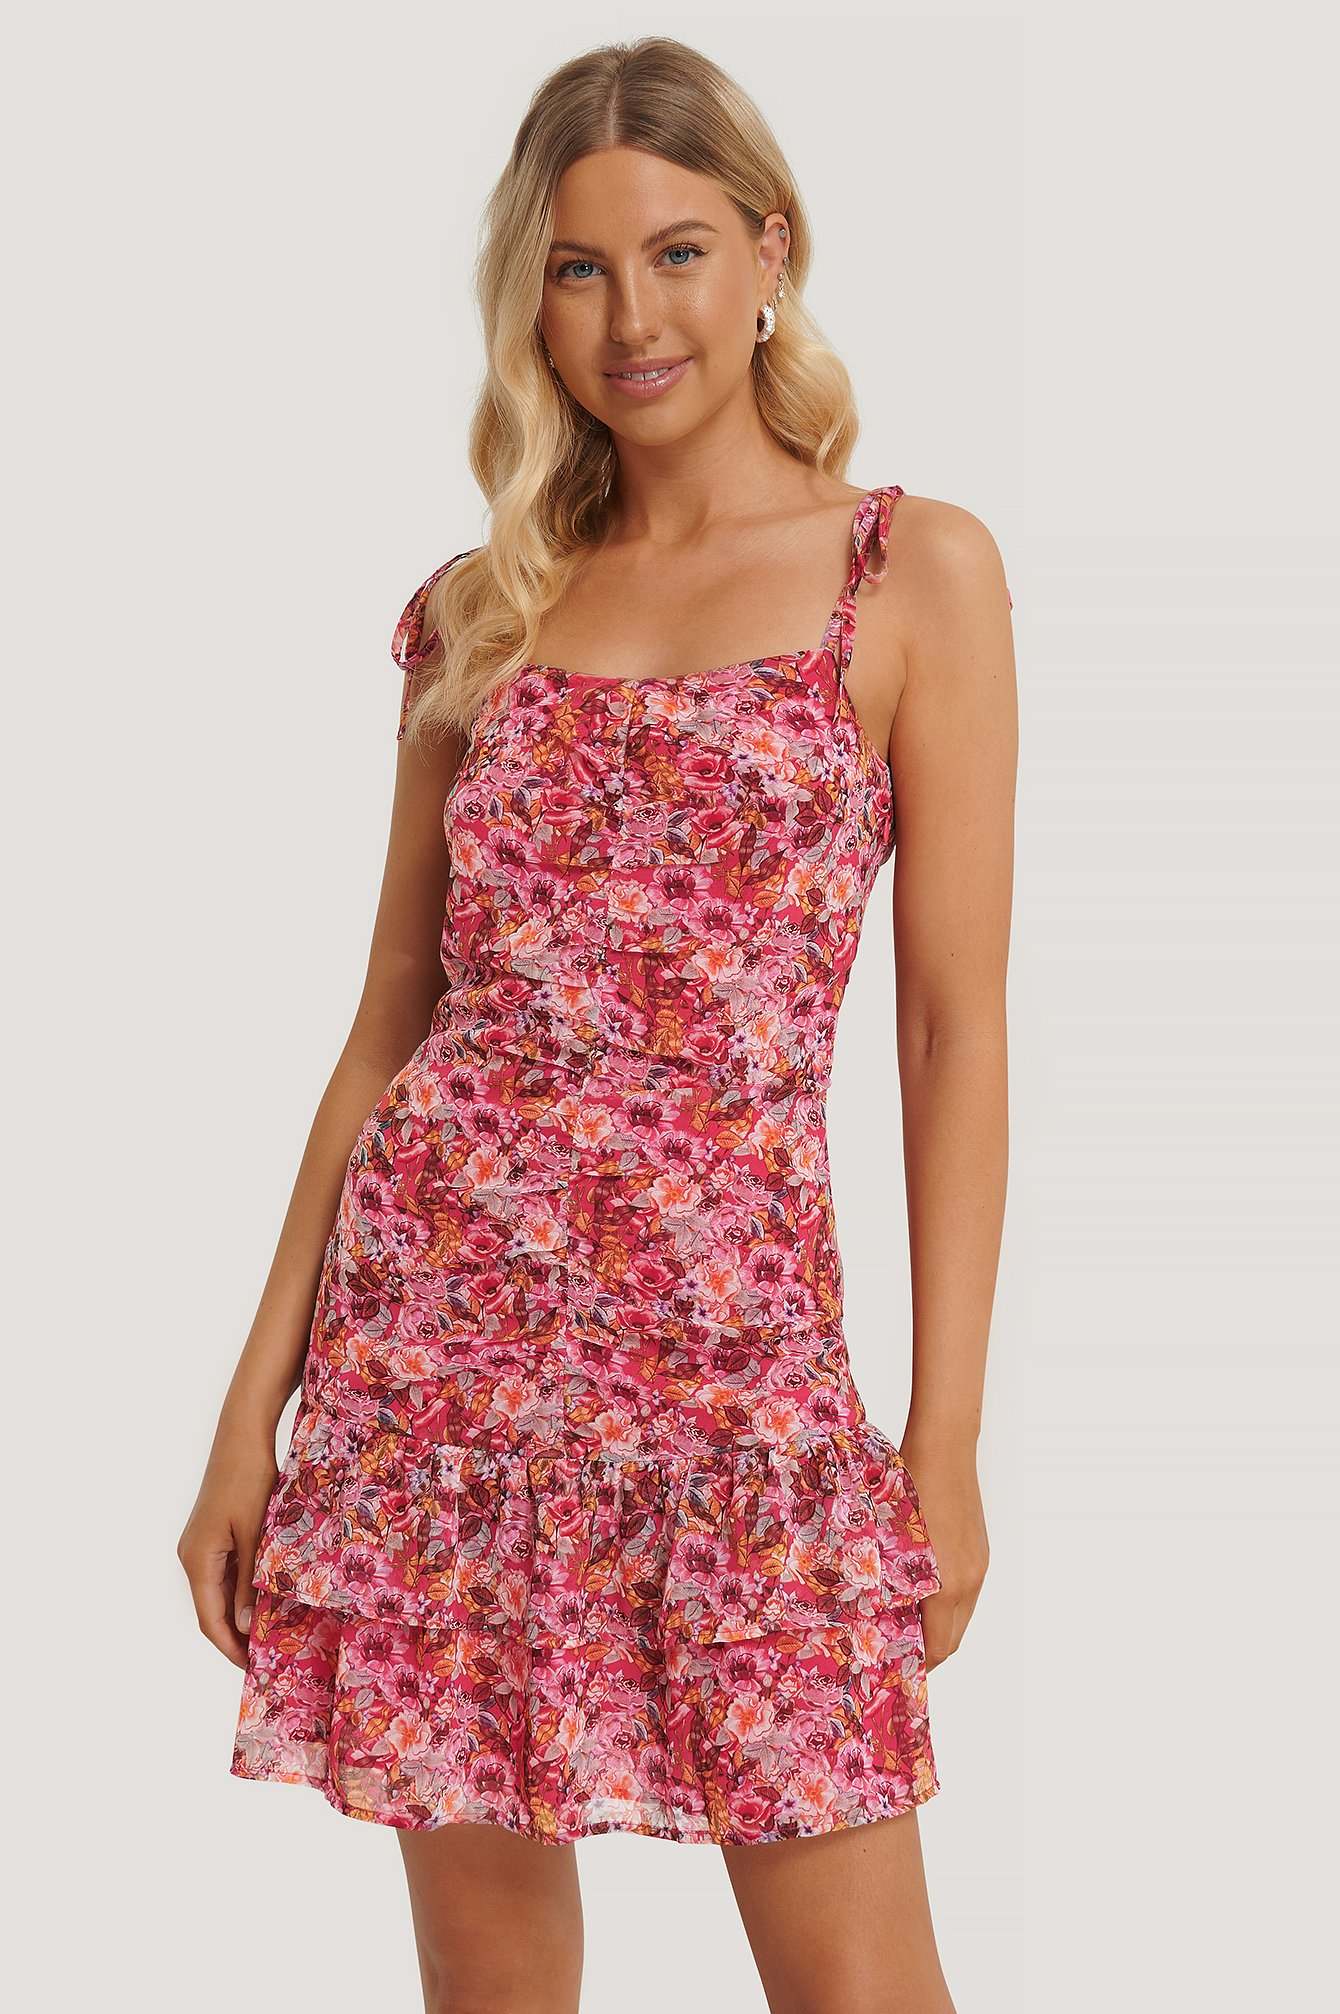 Flower Print Front Gatherings Dress